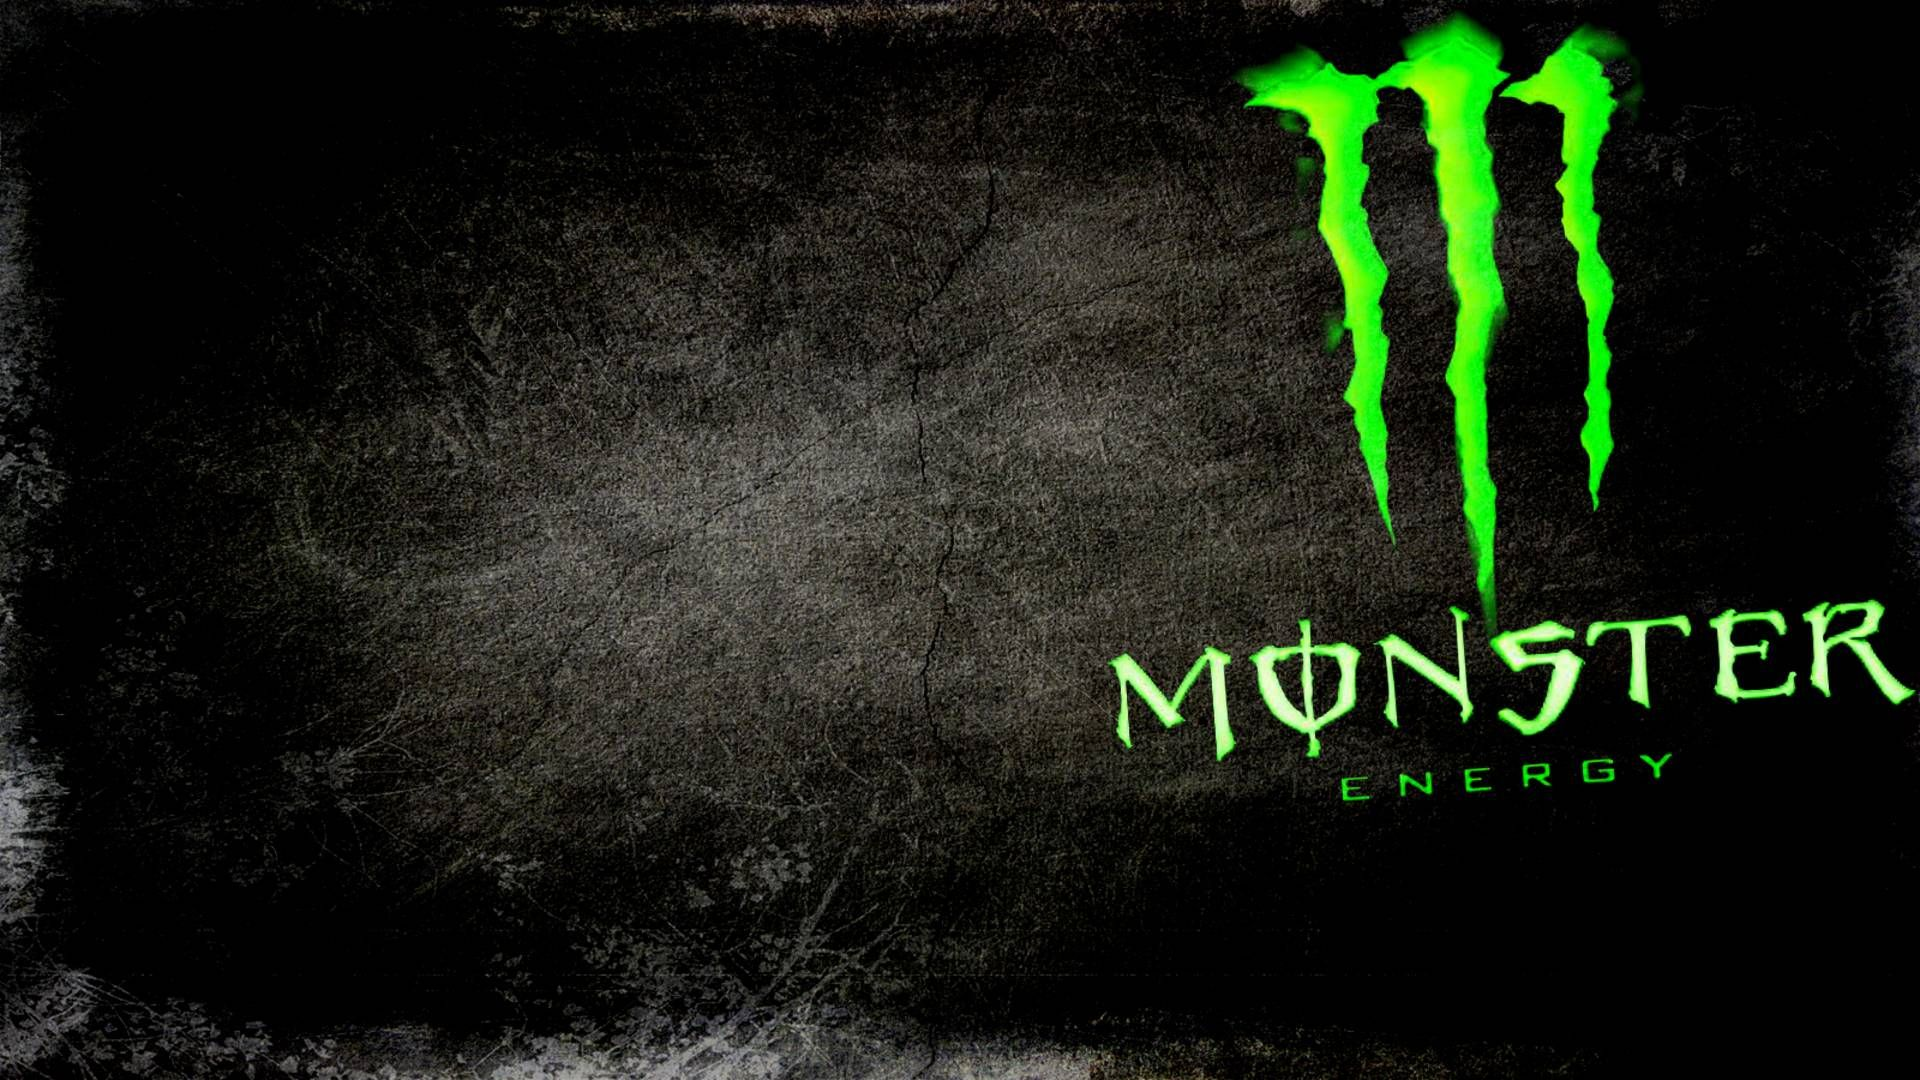 monster energy wallpapers hd 2015 wallpaper cave best games